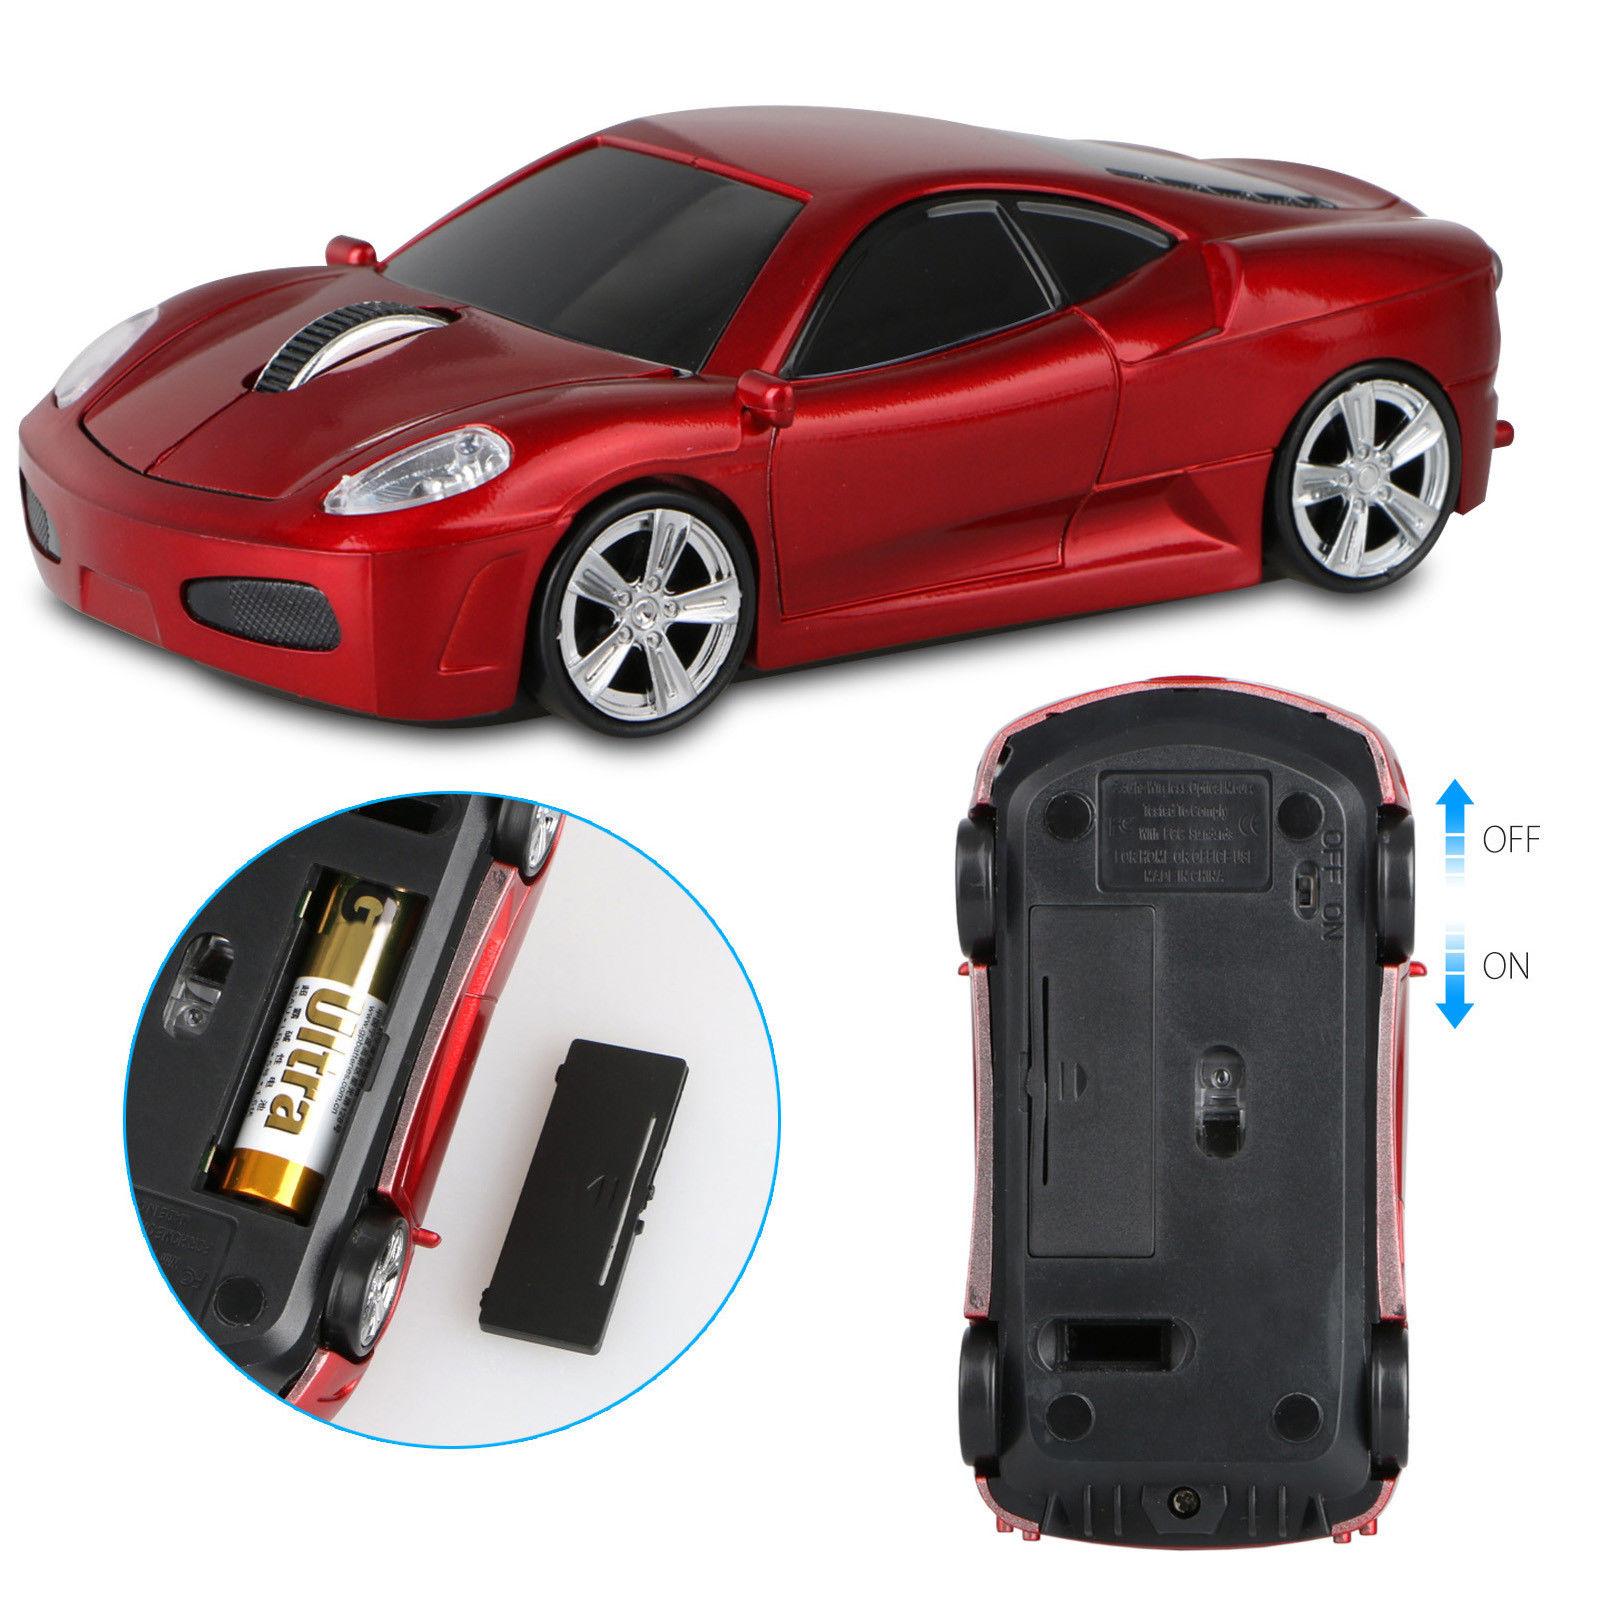 2.4GHz Wireless Sports Car Optical Mouse, 1600DPI Game Gaming Mice with Mini Receiver, for Windows 98 / ME / NT / 2000 / XP / Vista / Win 7/8/10 / Linux or Mac OS